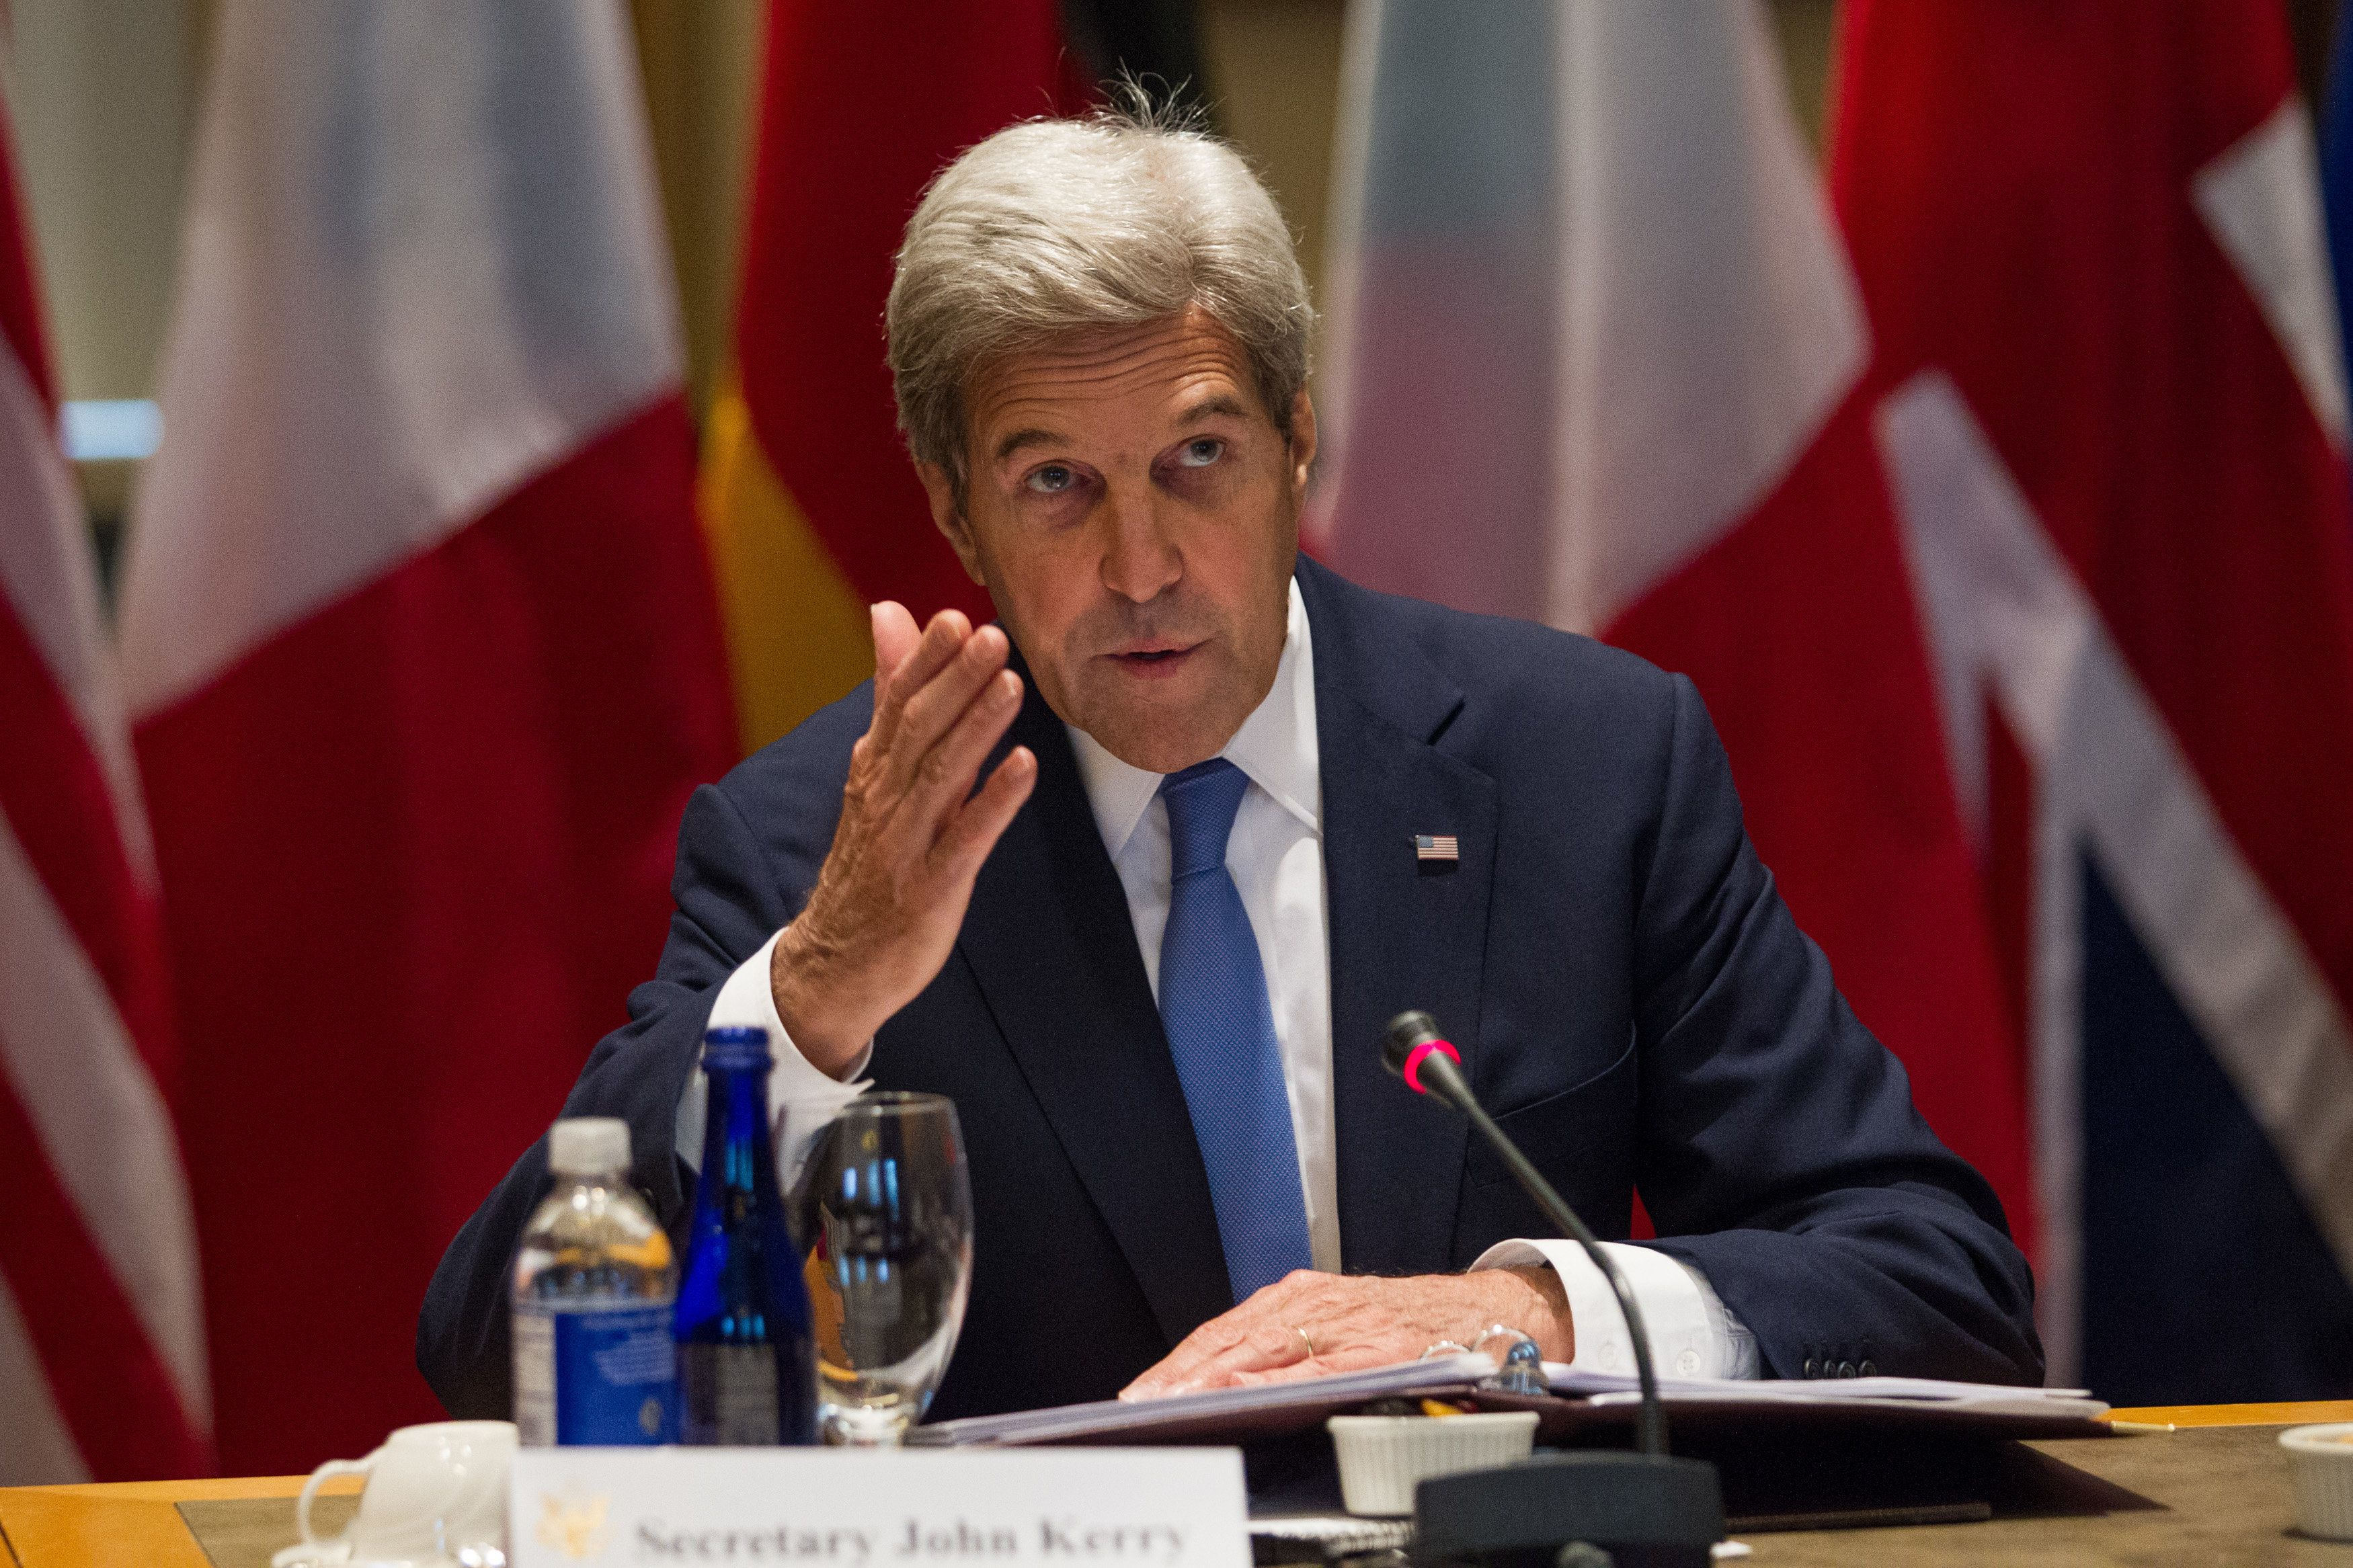 US Secretary of State John Kerry makes opening remarks during a ministerial meeting at Tufts University in Medford, Massachusetts on September 24, 2016.   / AFP / Matthew Healey        (Photo credit should read MATTHEW HEALEY/AFP/Getty Images)